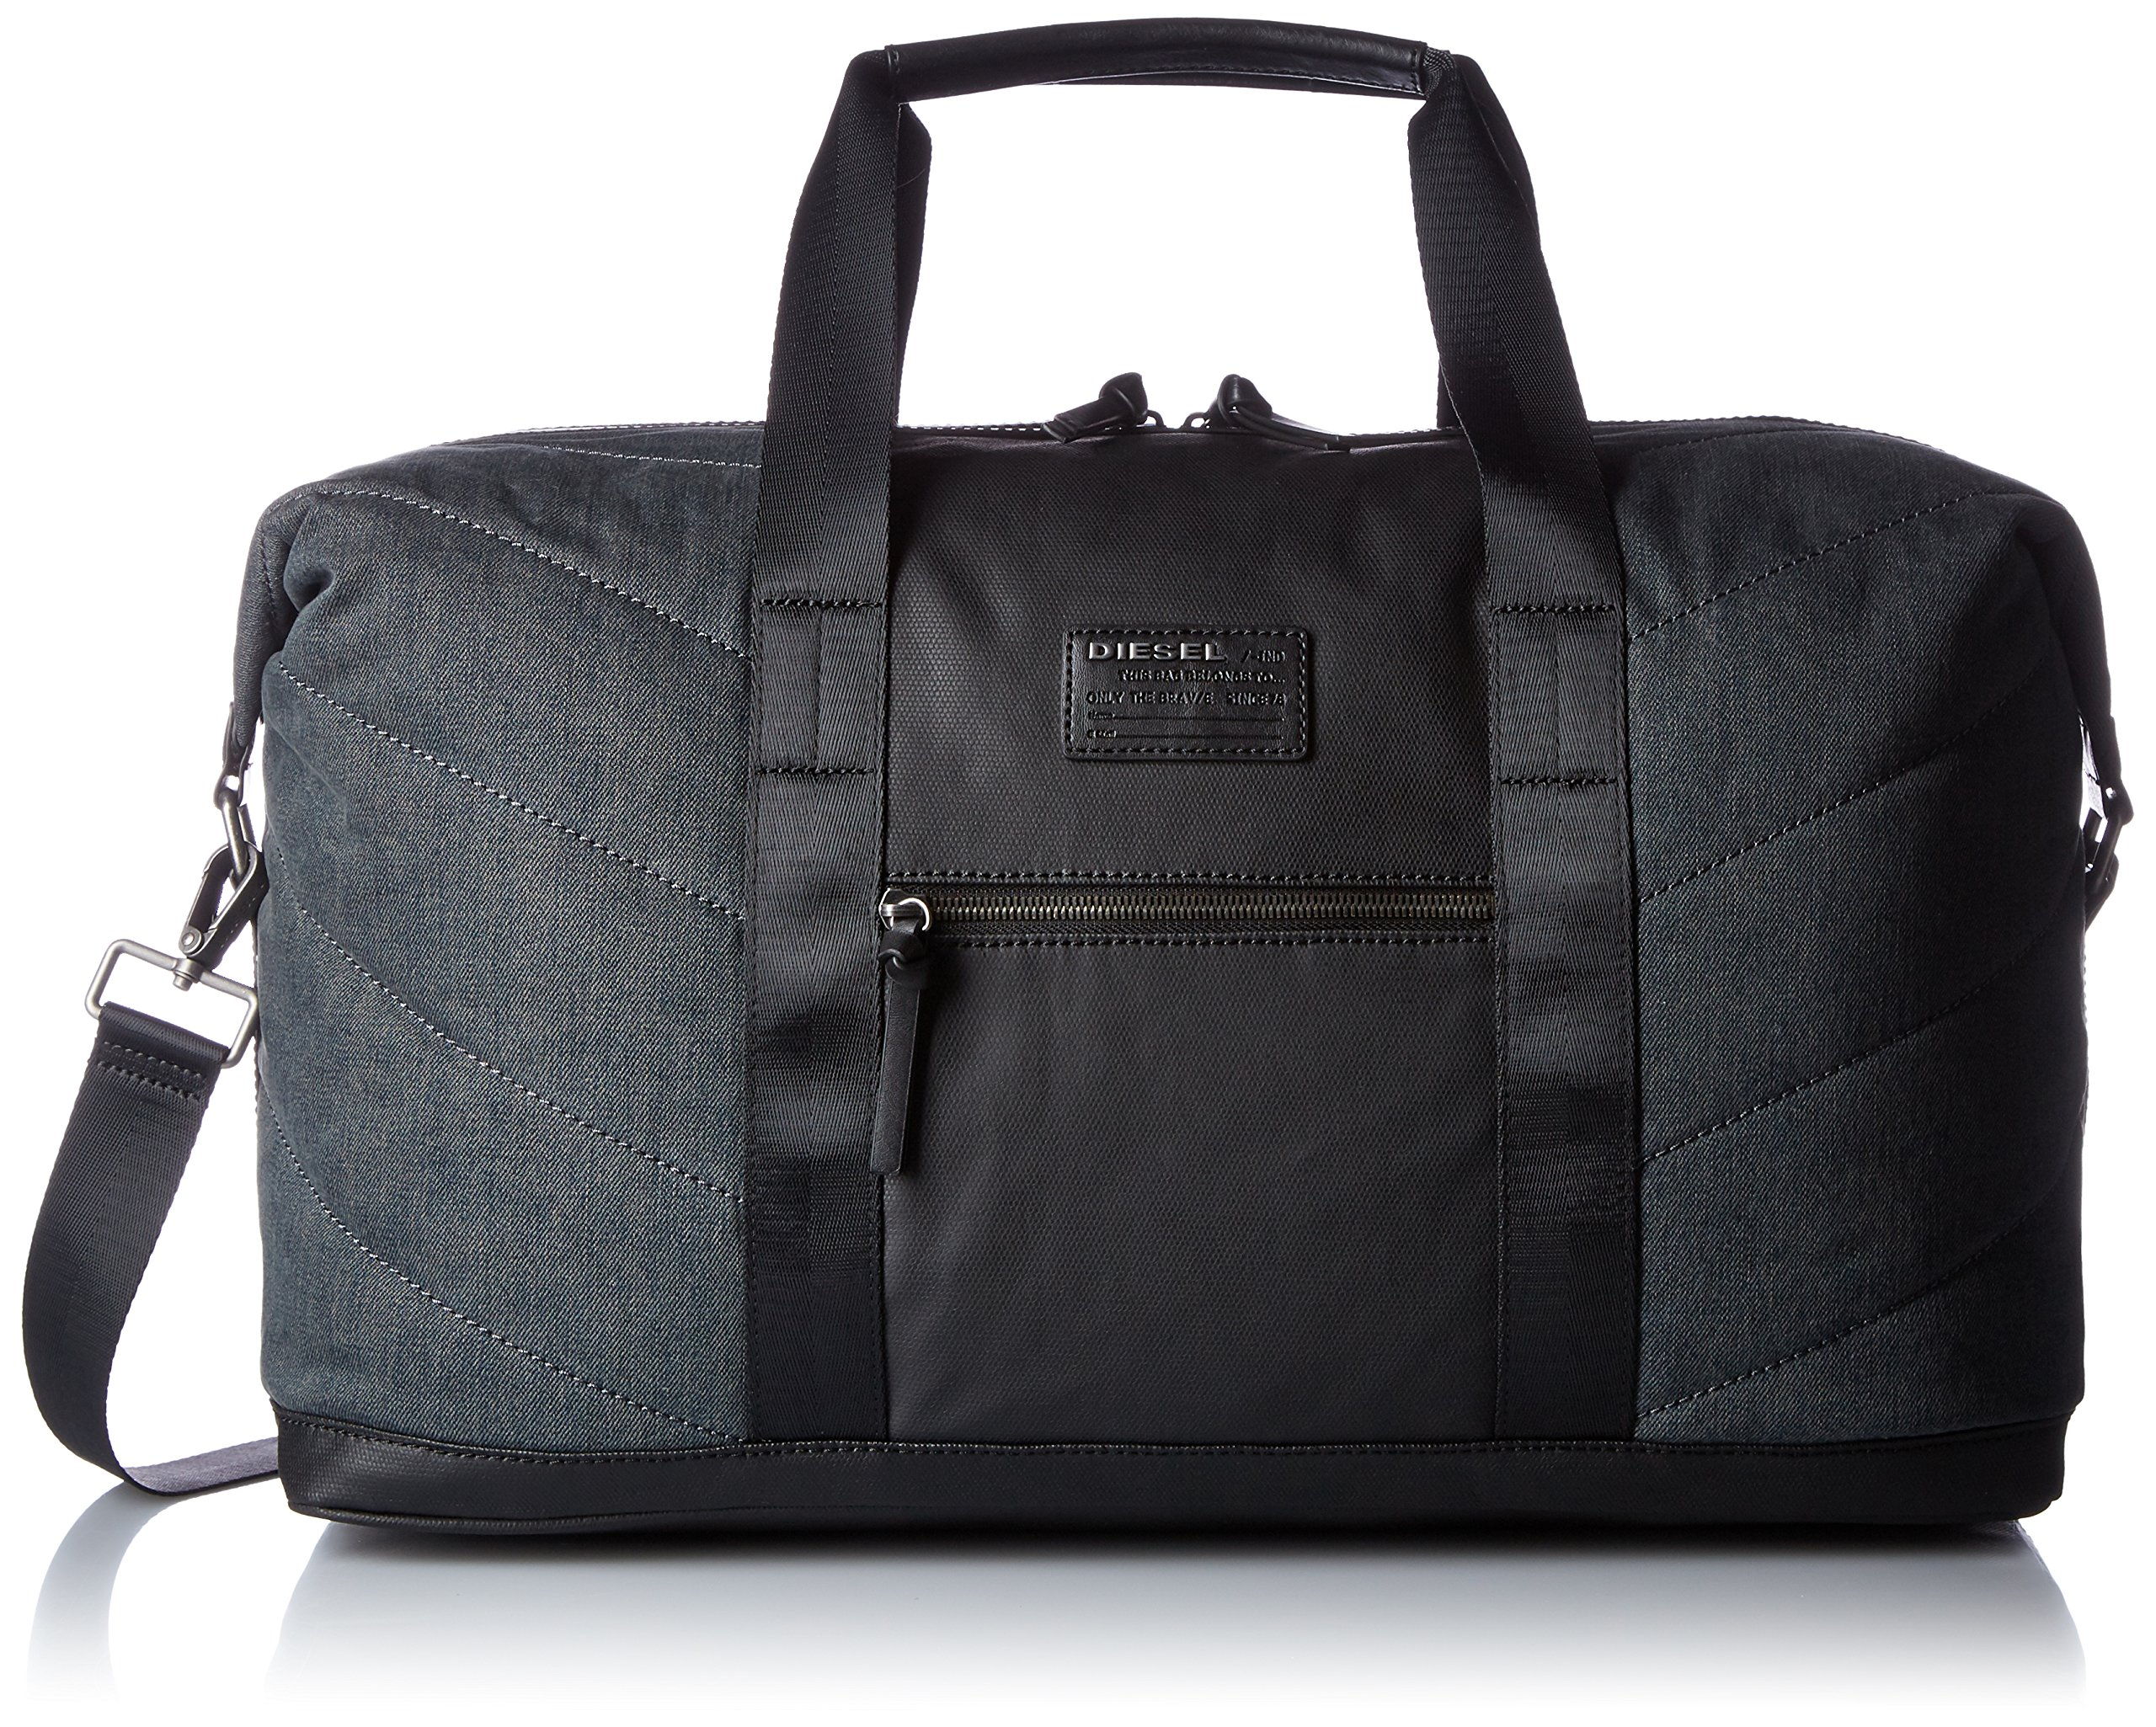 Diesel Men's Denim Duffle Bag, Dark Blue/Black